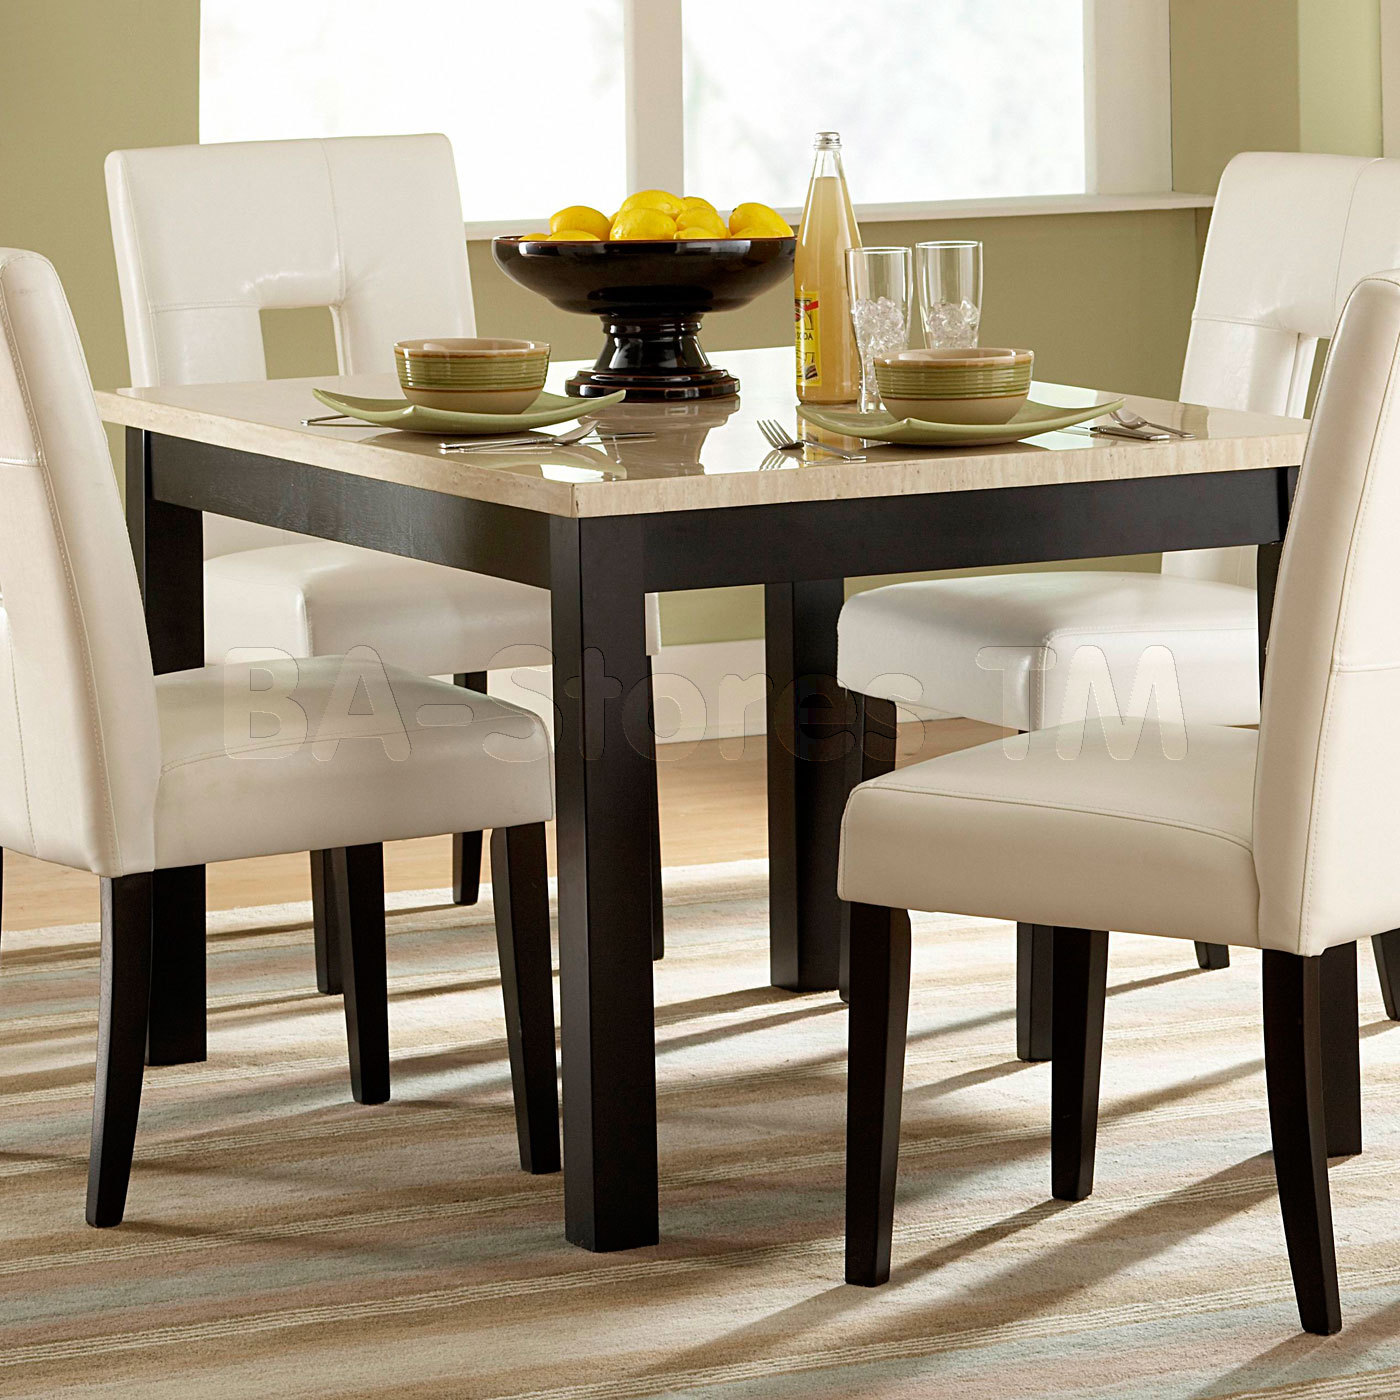 Square Dining Table With Bench: Square Dining Table For 4